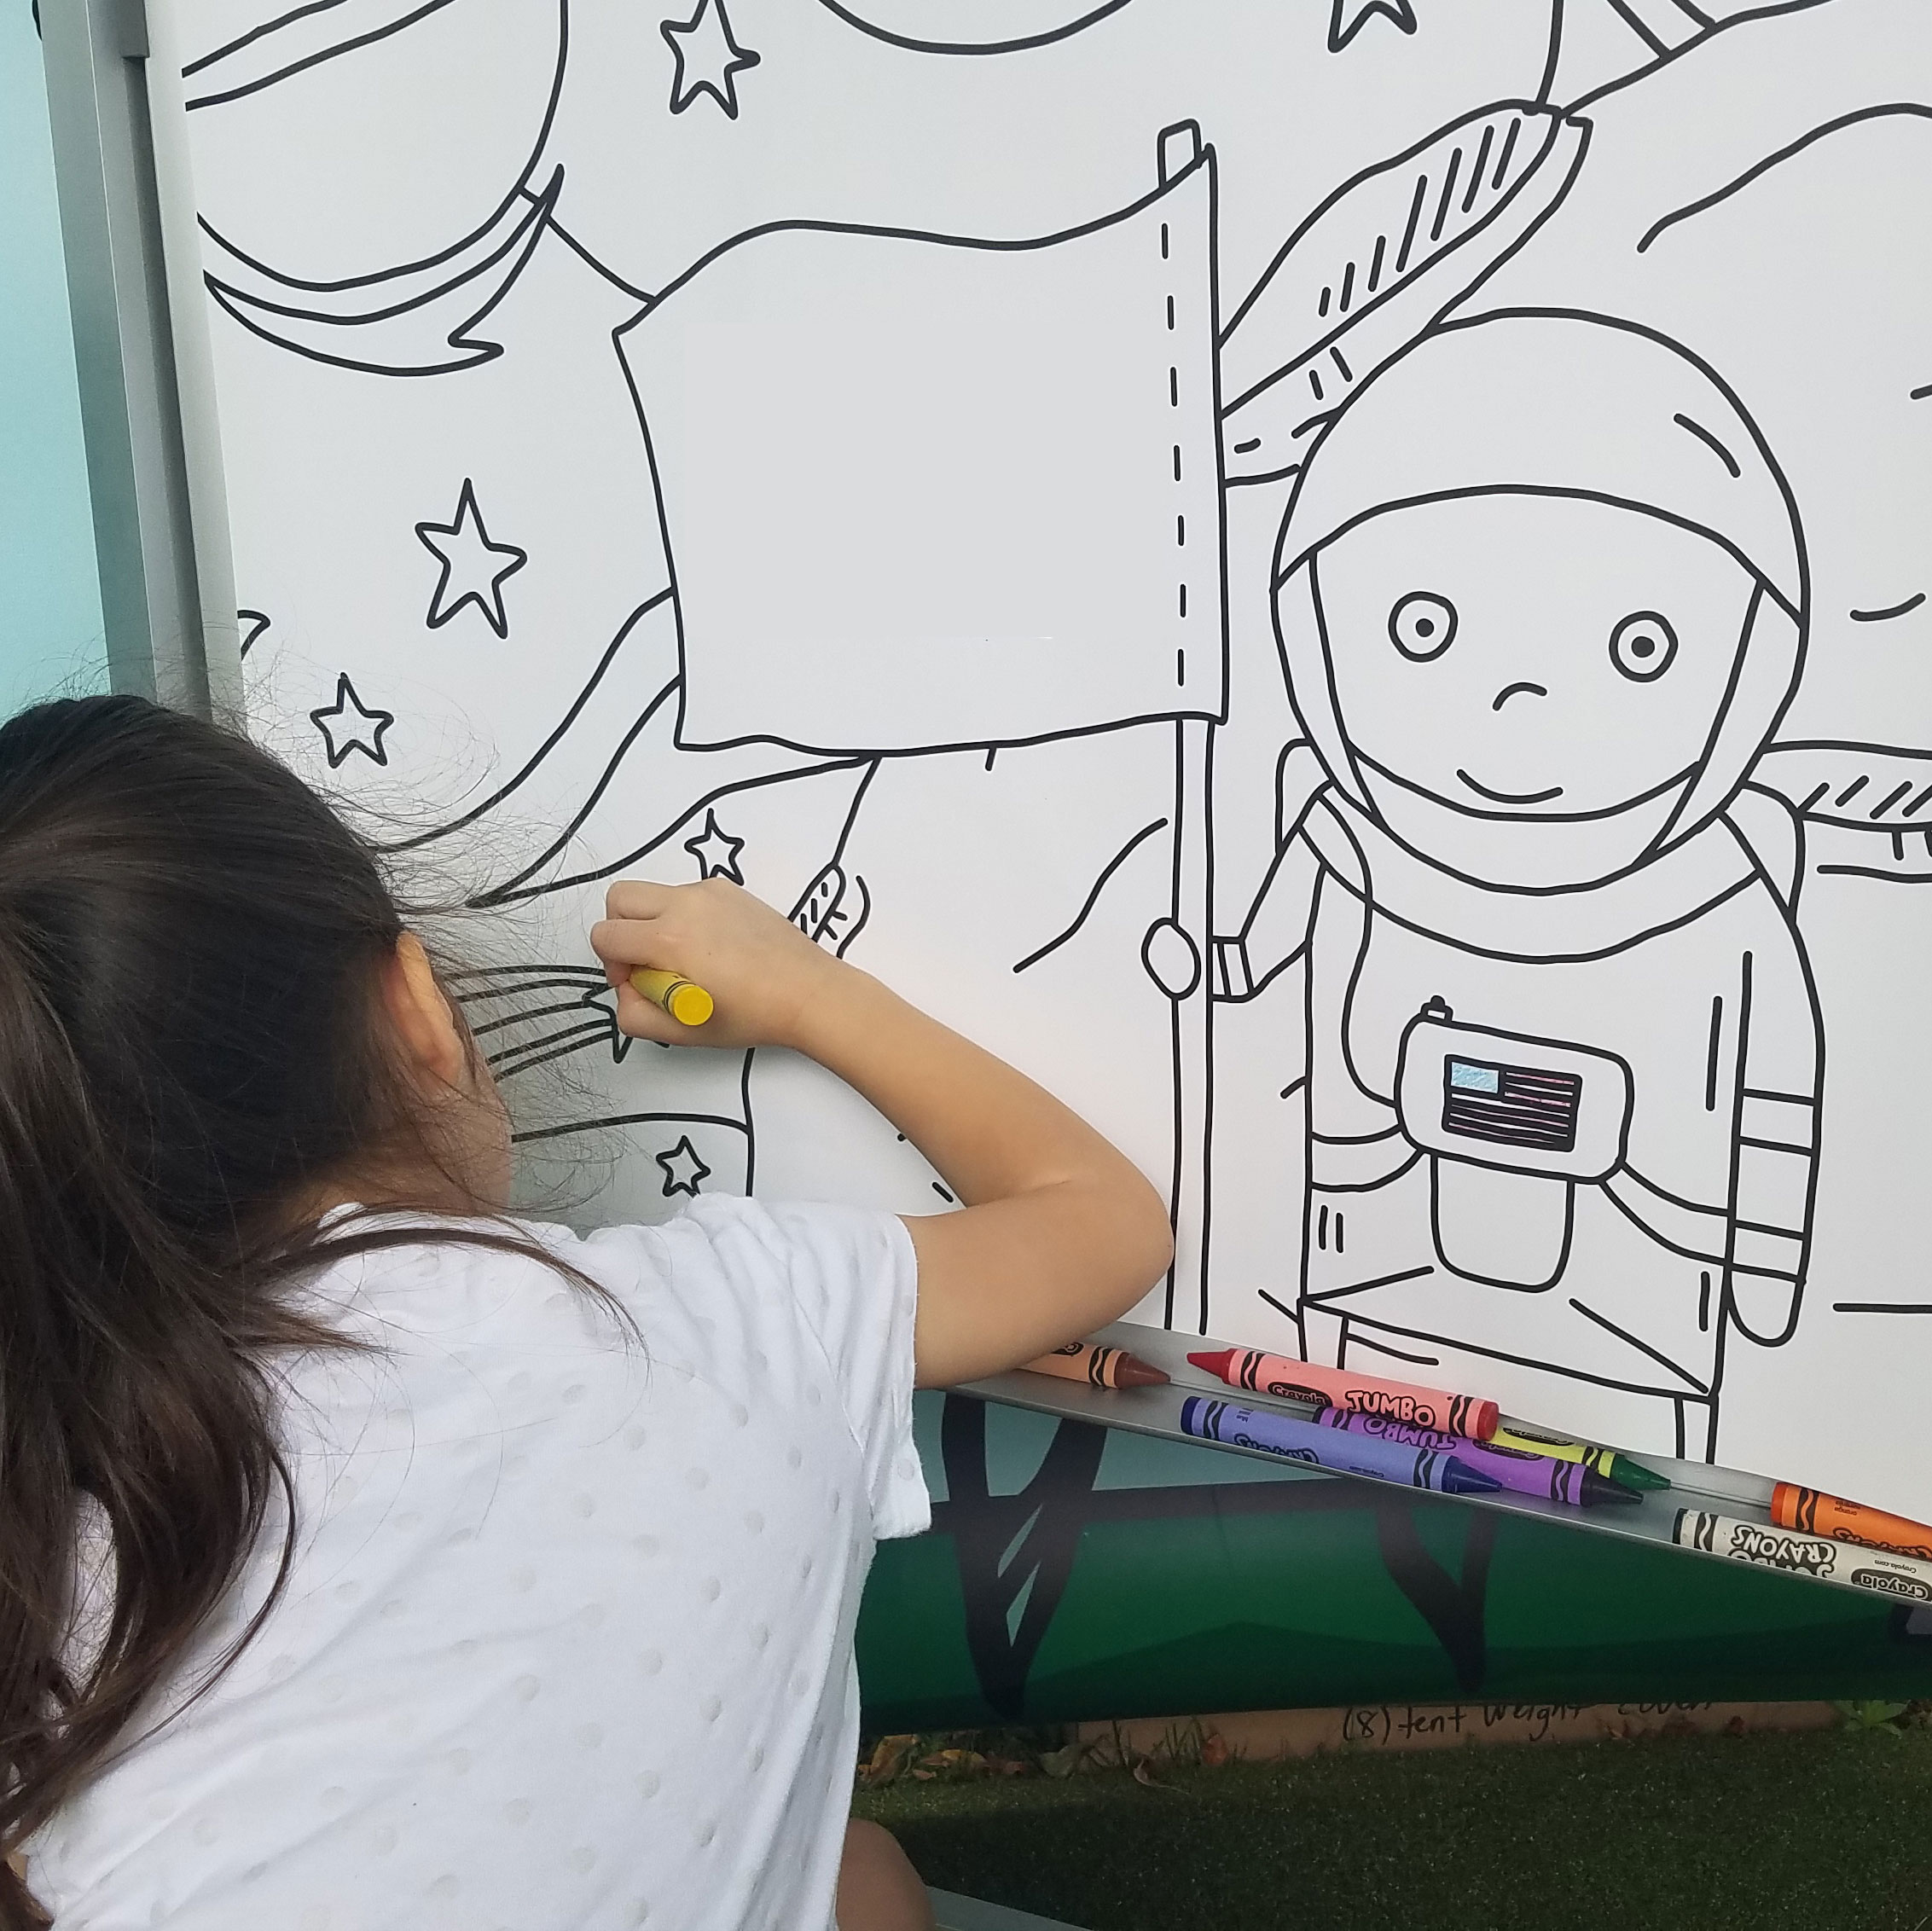 At the U.Fund Dreams Tour mural, Violet went right for the astronaut.